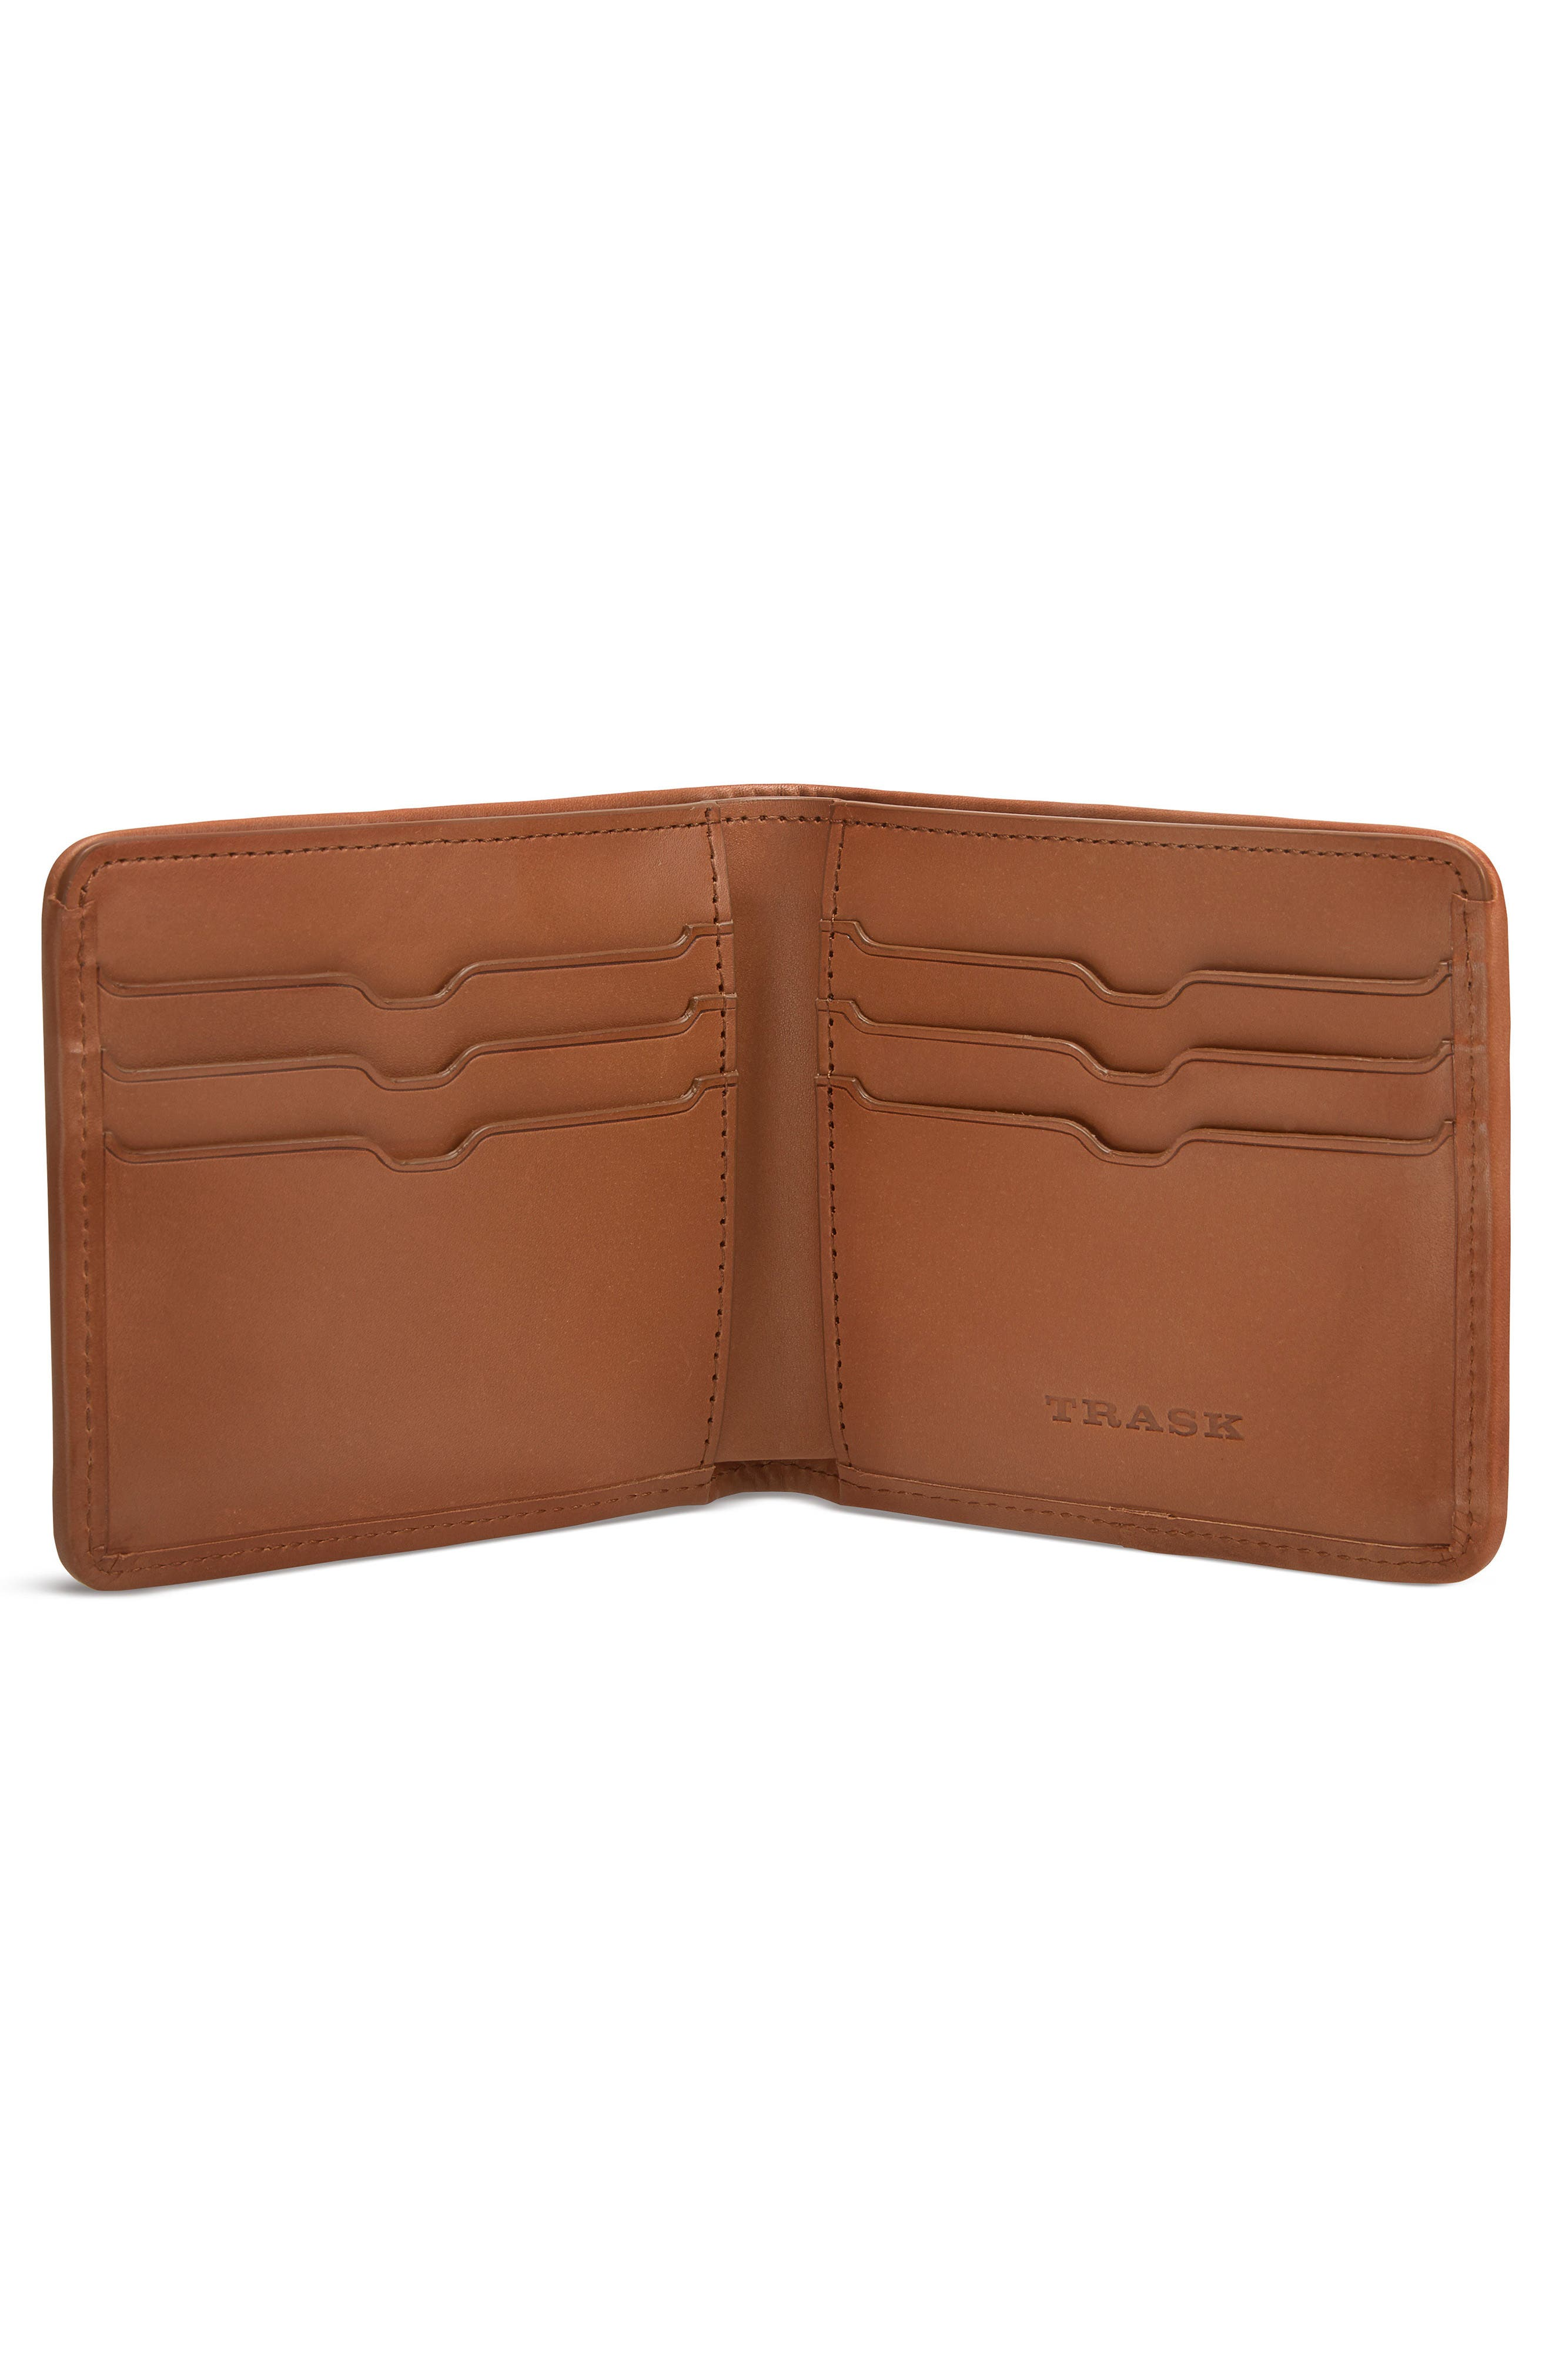 Woven Leather Wallet,                             Alternate thumbnail 2, color,                             240